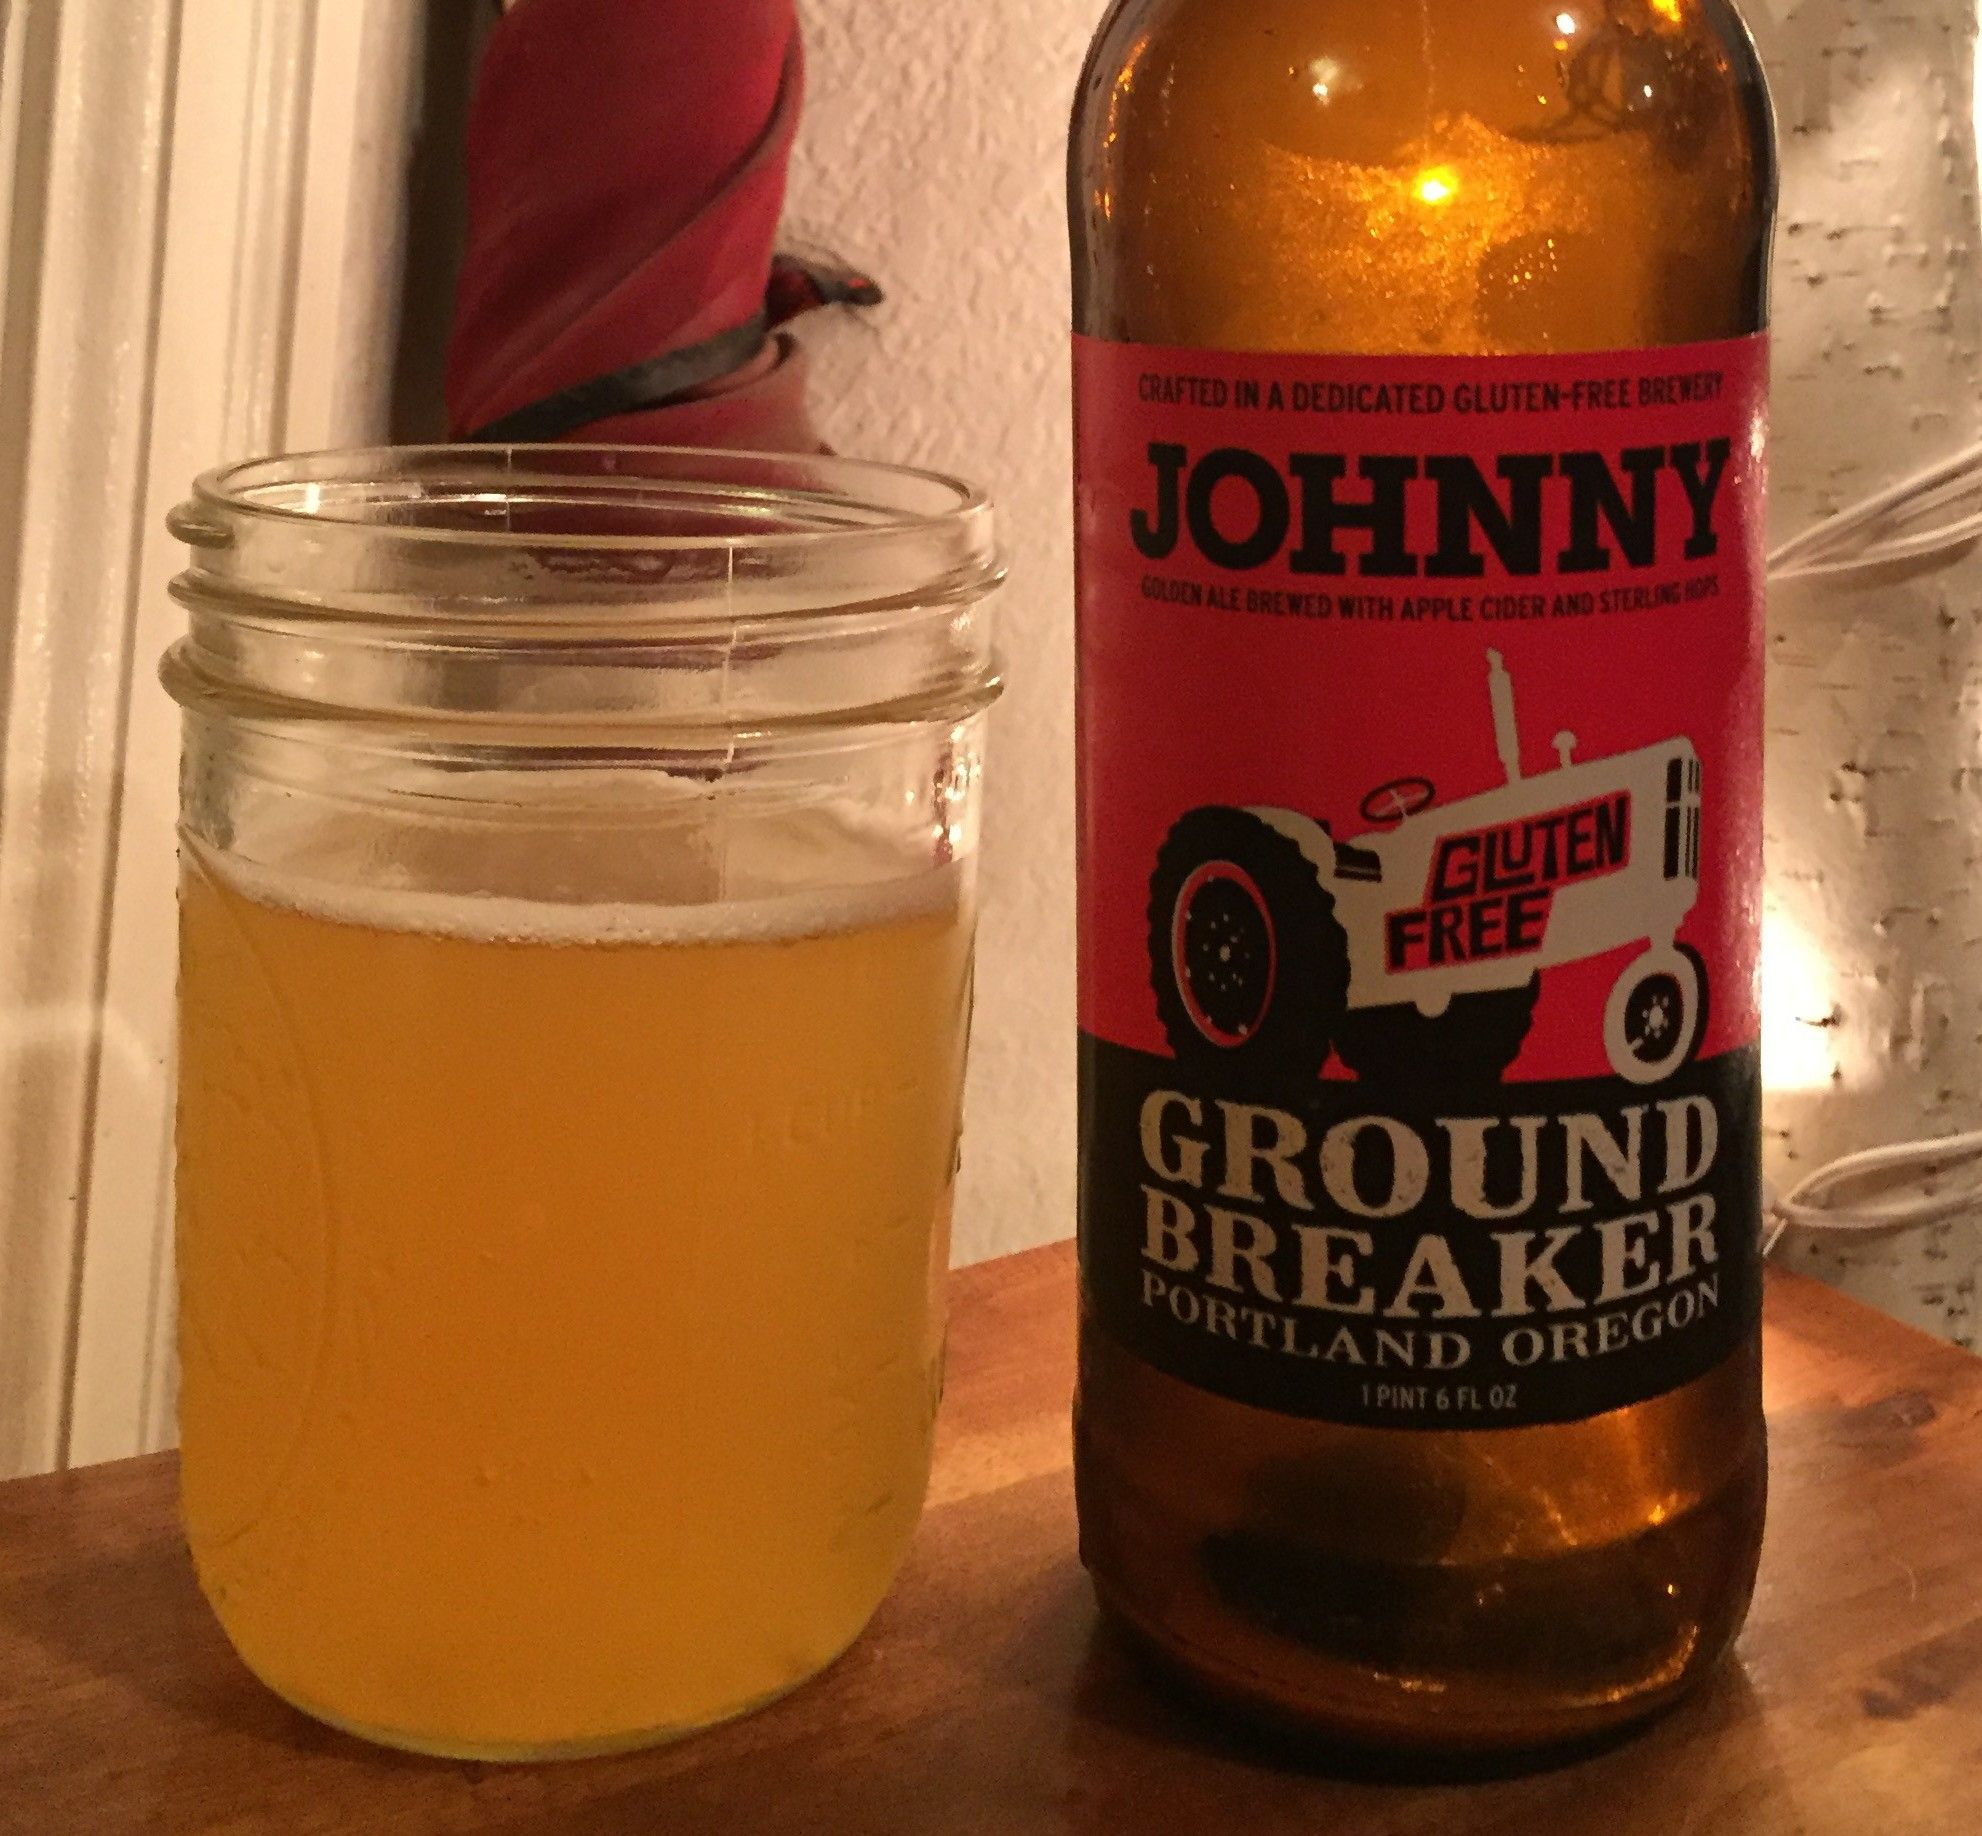 gluten free beer review ground breaker johnny golden ale portland gluten free brewery best gluten free beers